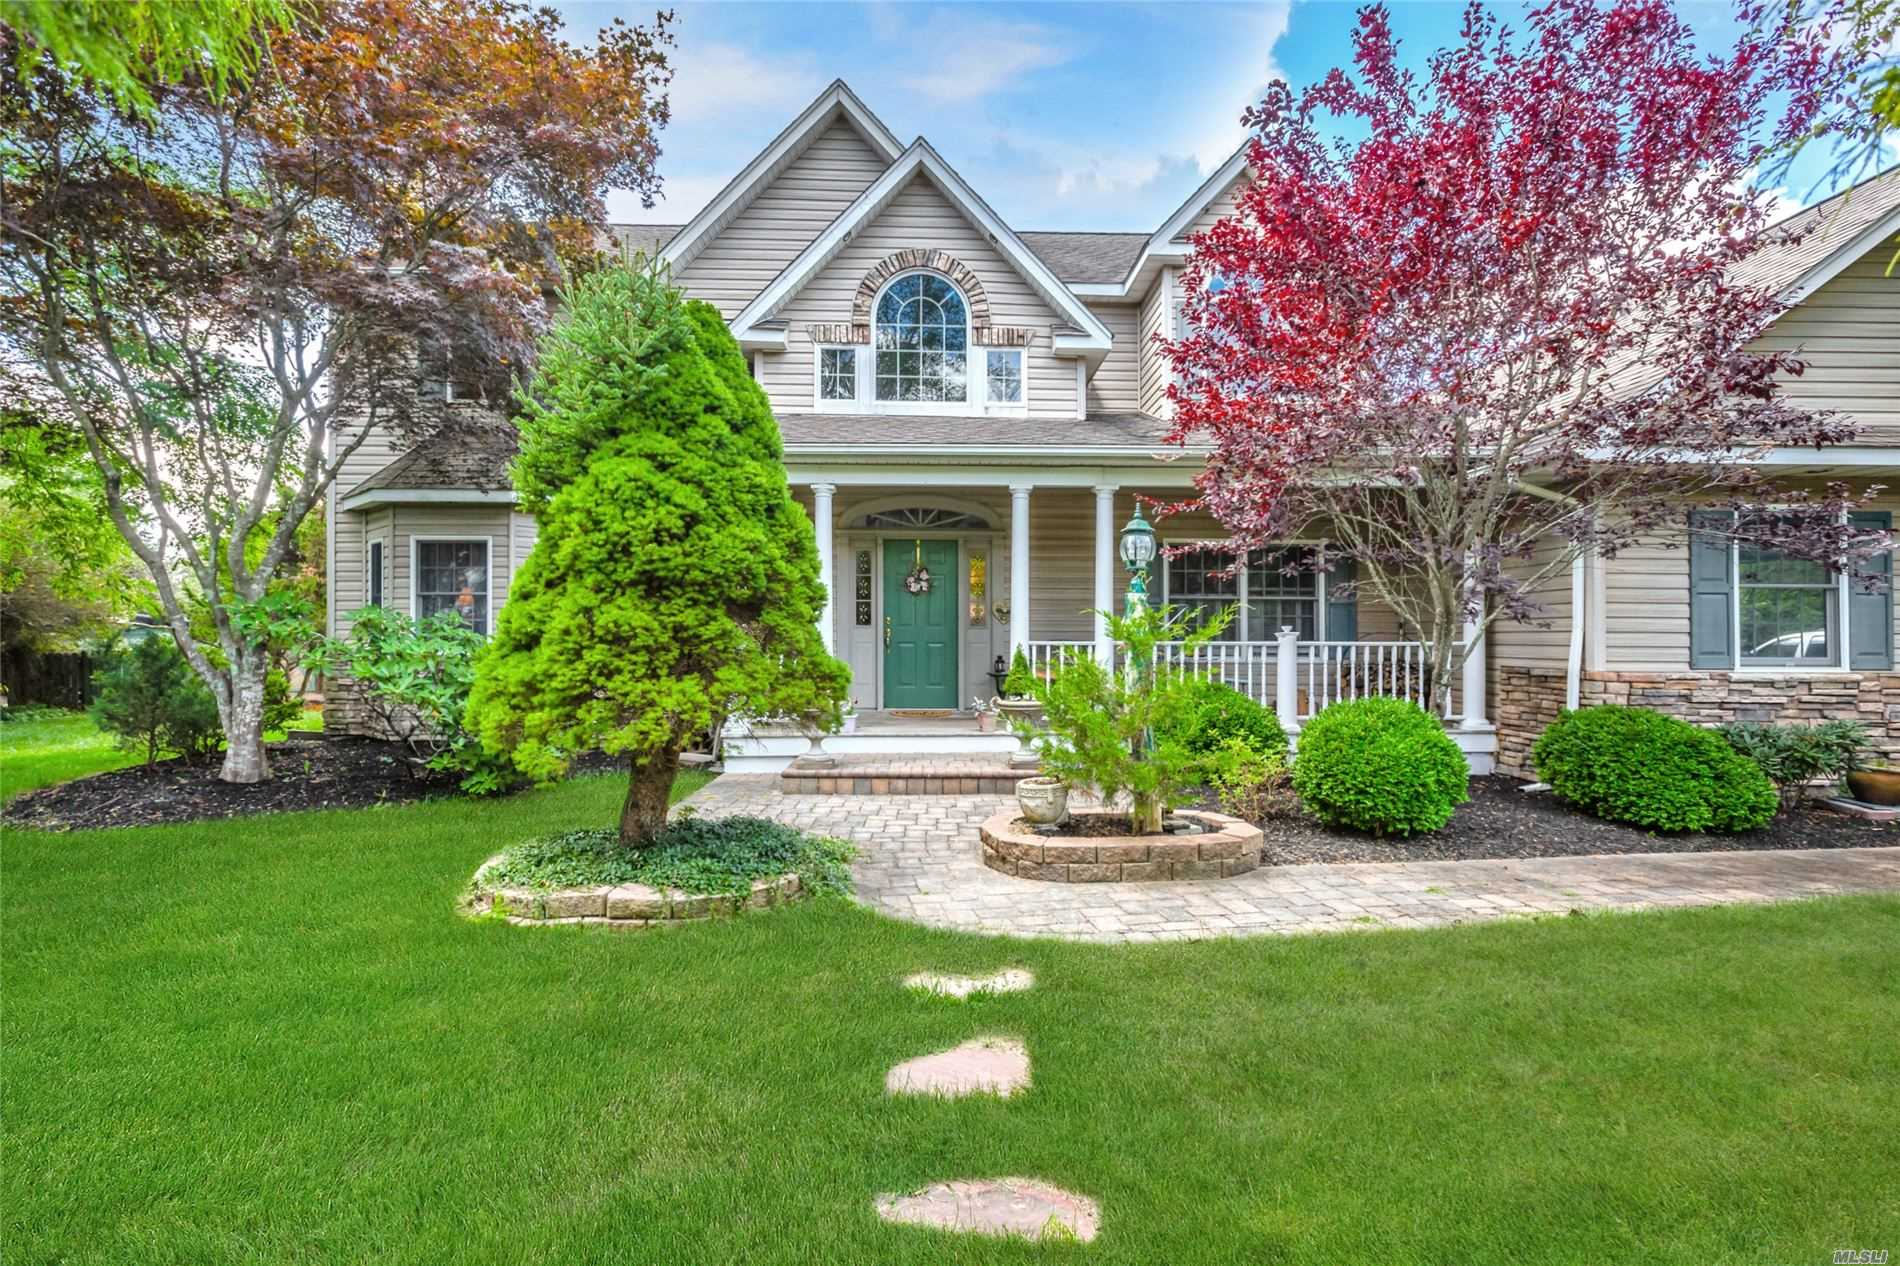 16 Briana Ct - East Moriches, New York